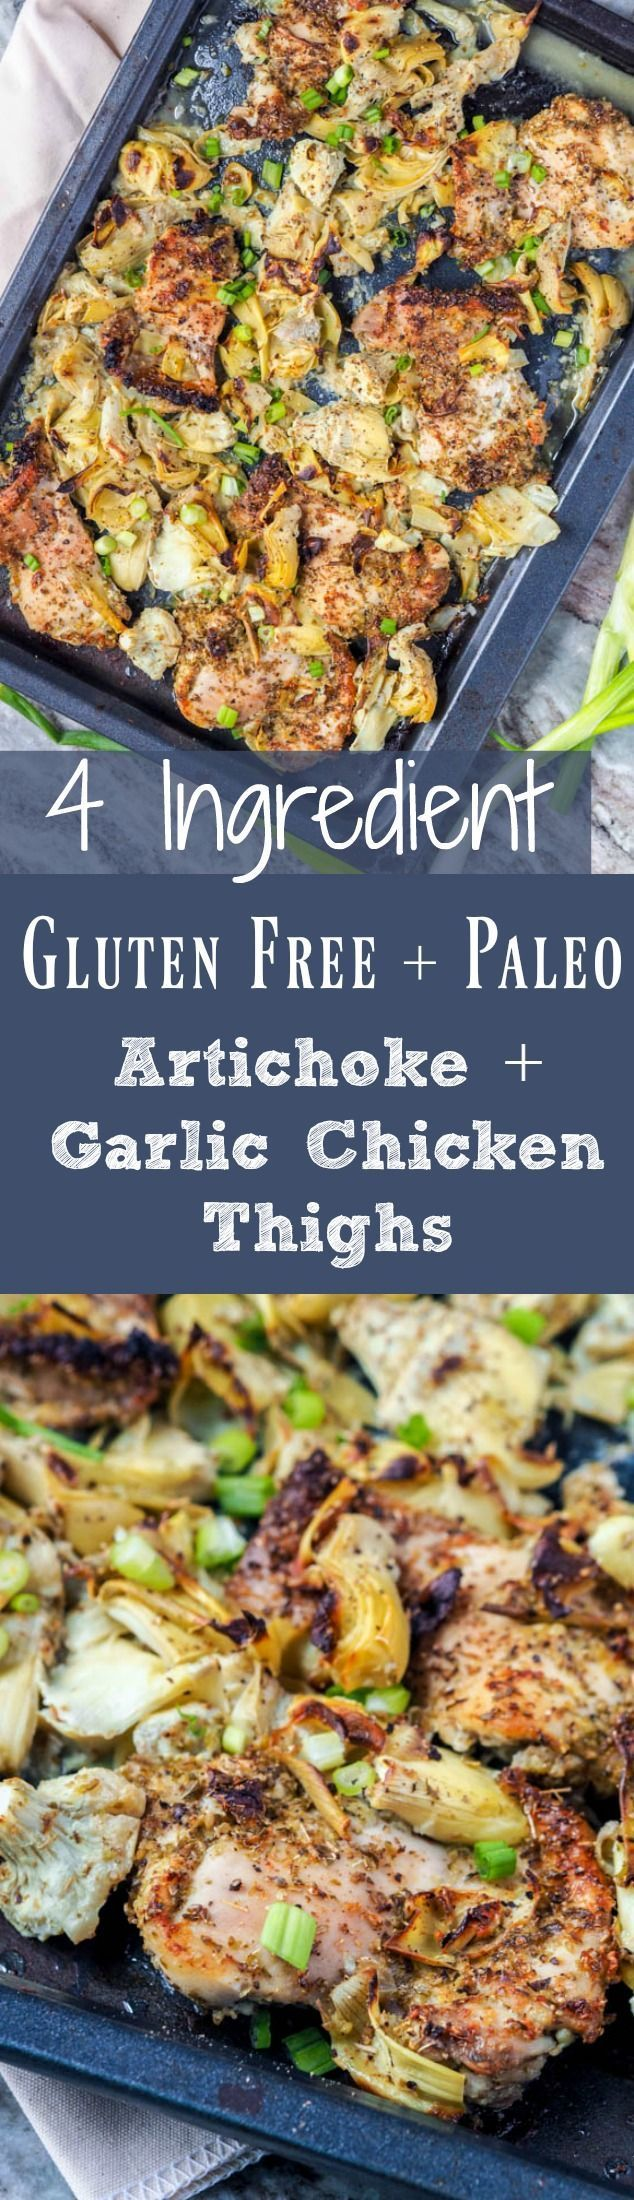 Only 4 ingredients needed for these low fuss, minimal clean up 30 minute artichoke and garlic broiled chicken thighs. A classic go to weeknight dinner recipe. Healthy and delicious. Gluten Free and Dairy Free.   http://avocadopesto.com